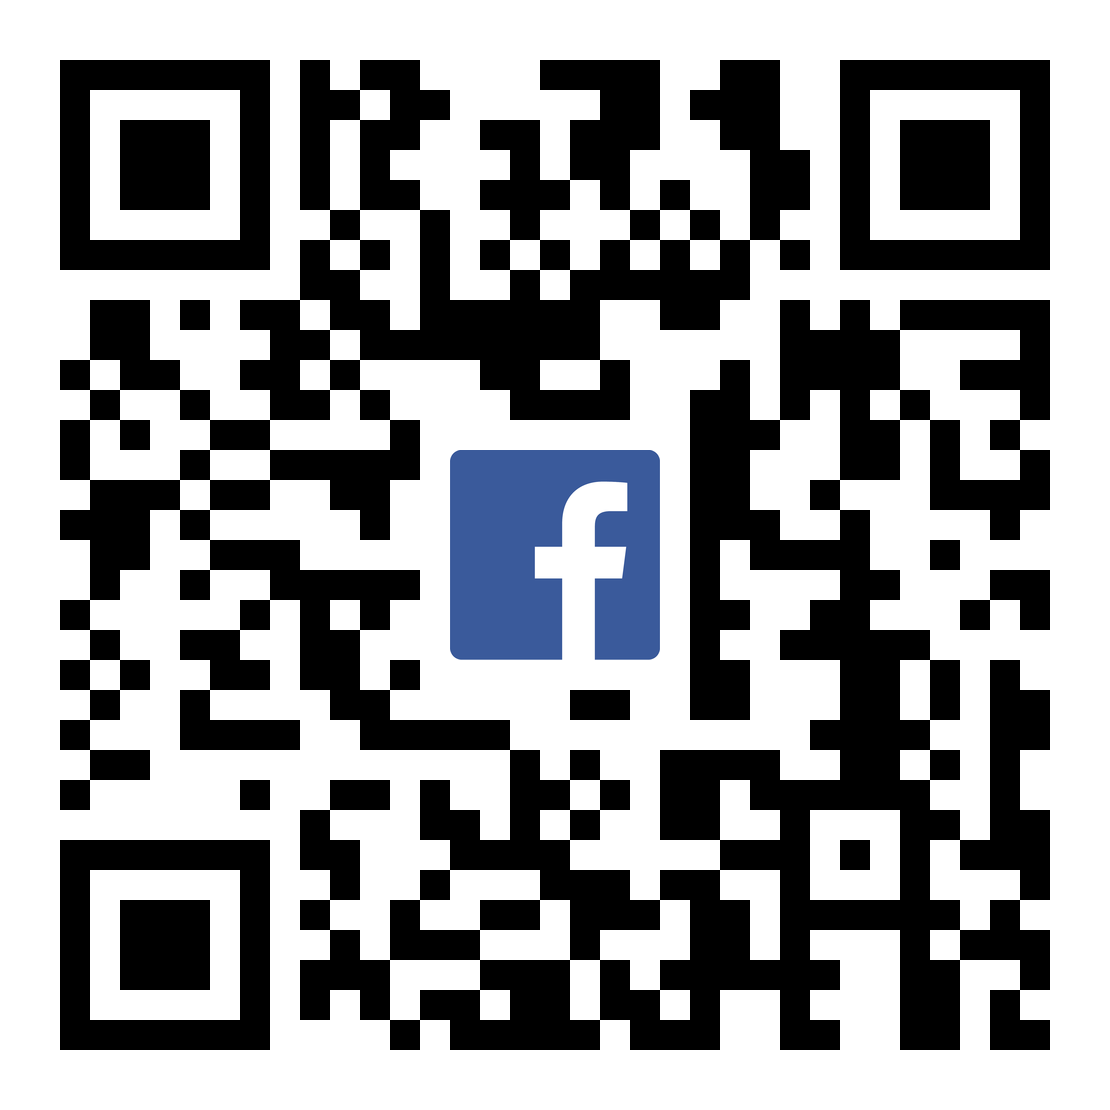 FB QCR code to access Forbidden Belly Dance and Variety Show! Friday the 13th event